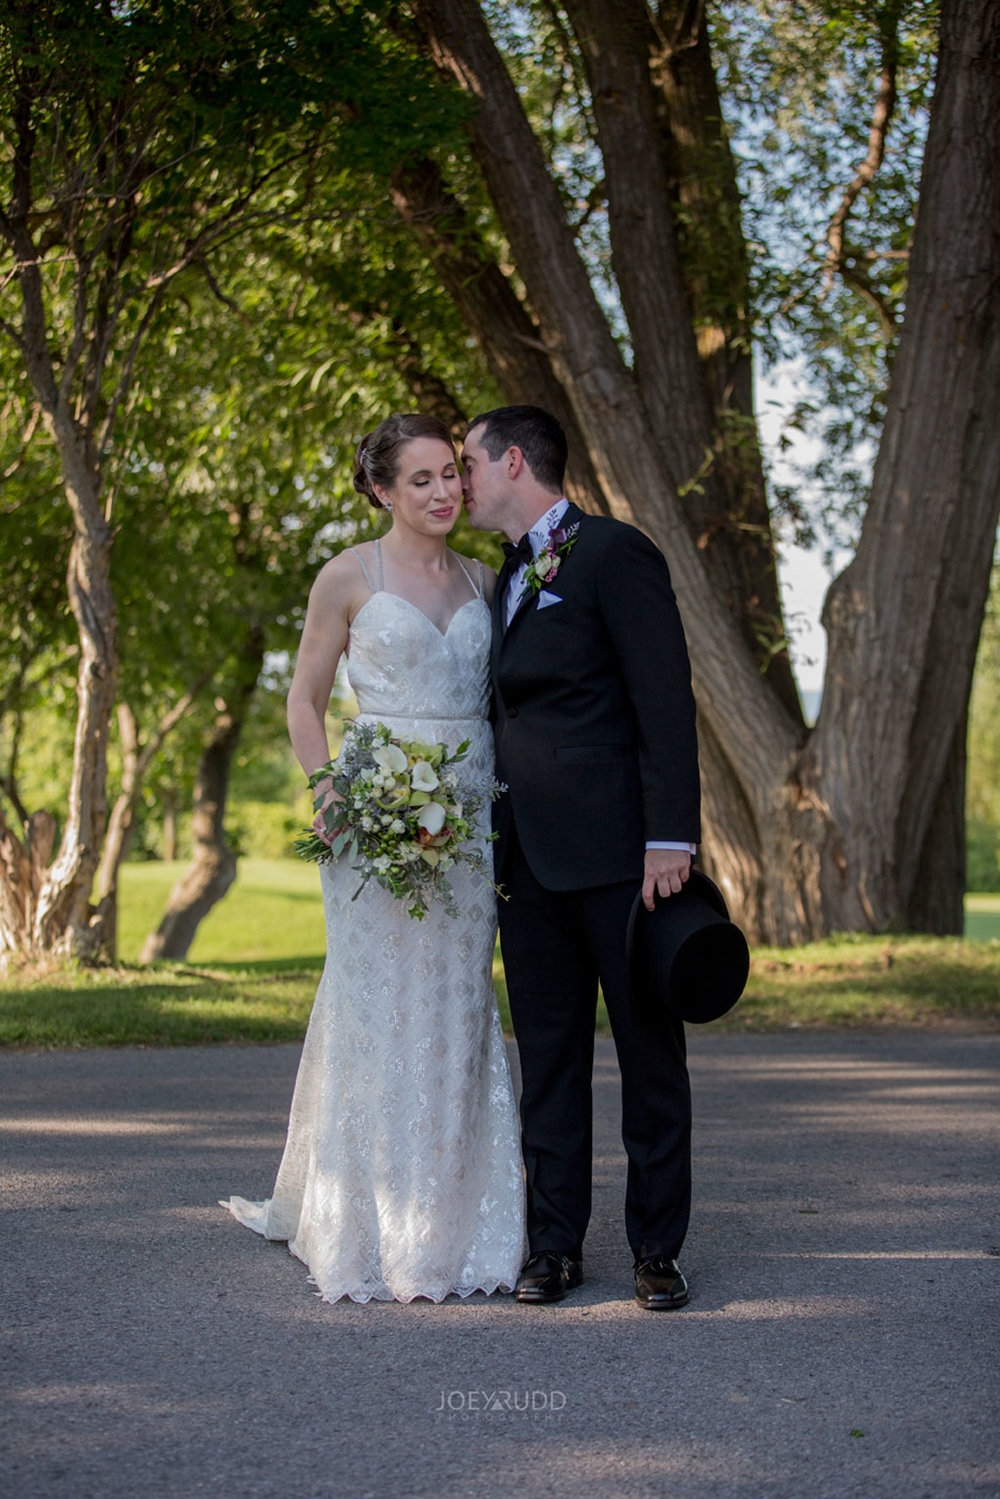 Marshes Wedding, Marshes Golf Club, Ottawa, Ottawa Wedding, Ontario Wedding, Joey Rudd Photography, Wedding Photos, Bride and Groom, Couple at Golf Club